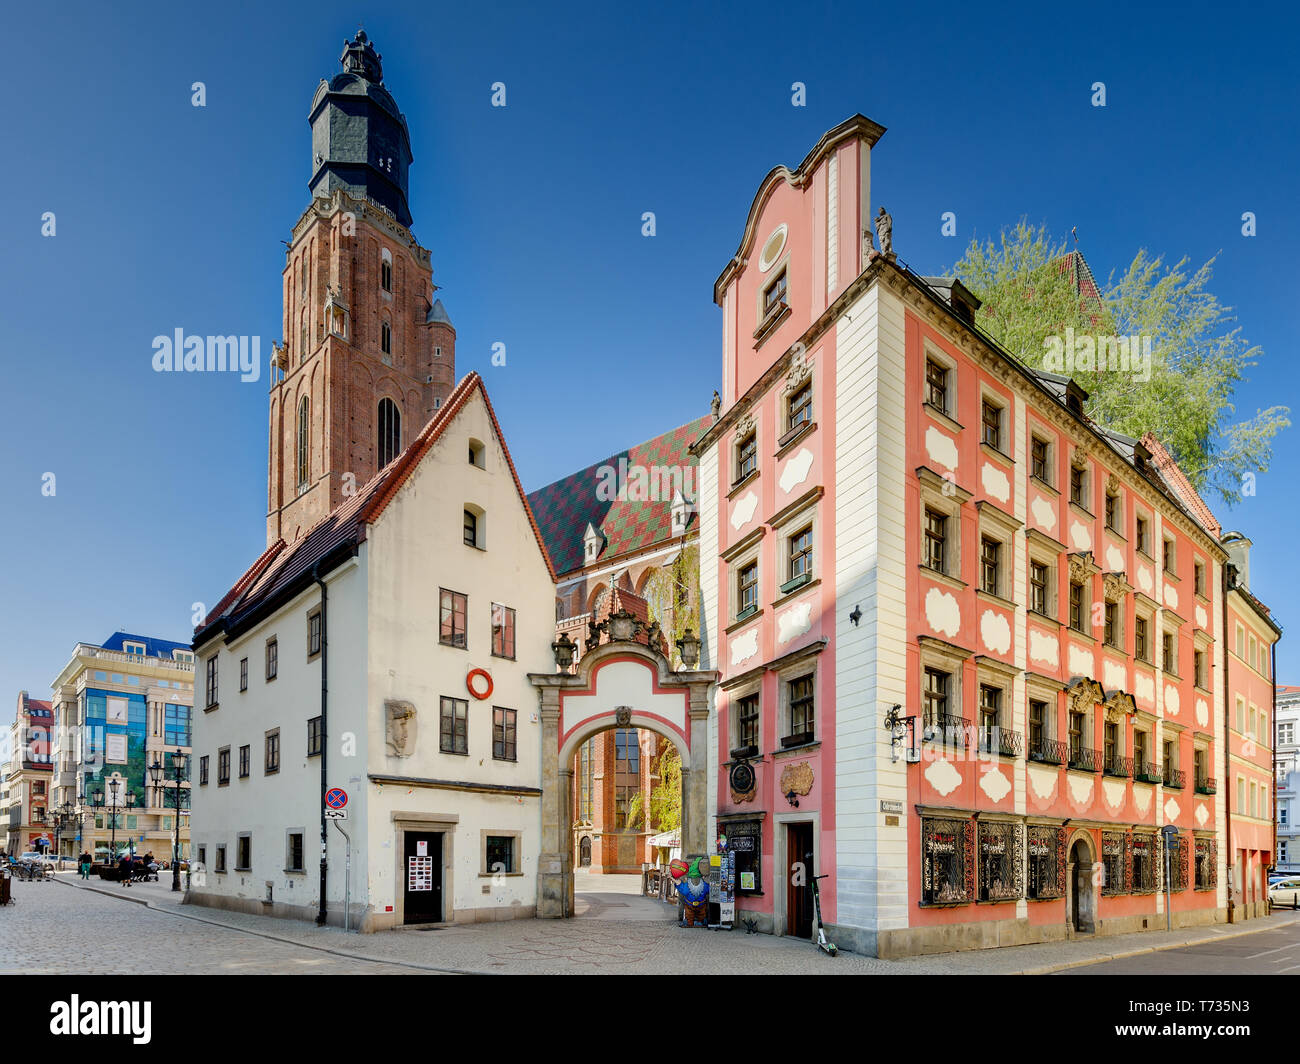 Wroclaw, Lower Silesian province, Poland. 15th cent. medieval tenement houses, called 'Jas i Malgosia'. Stock Photo